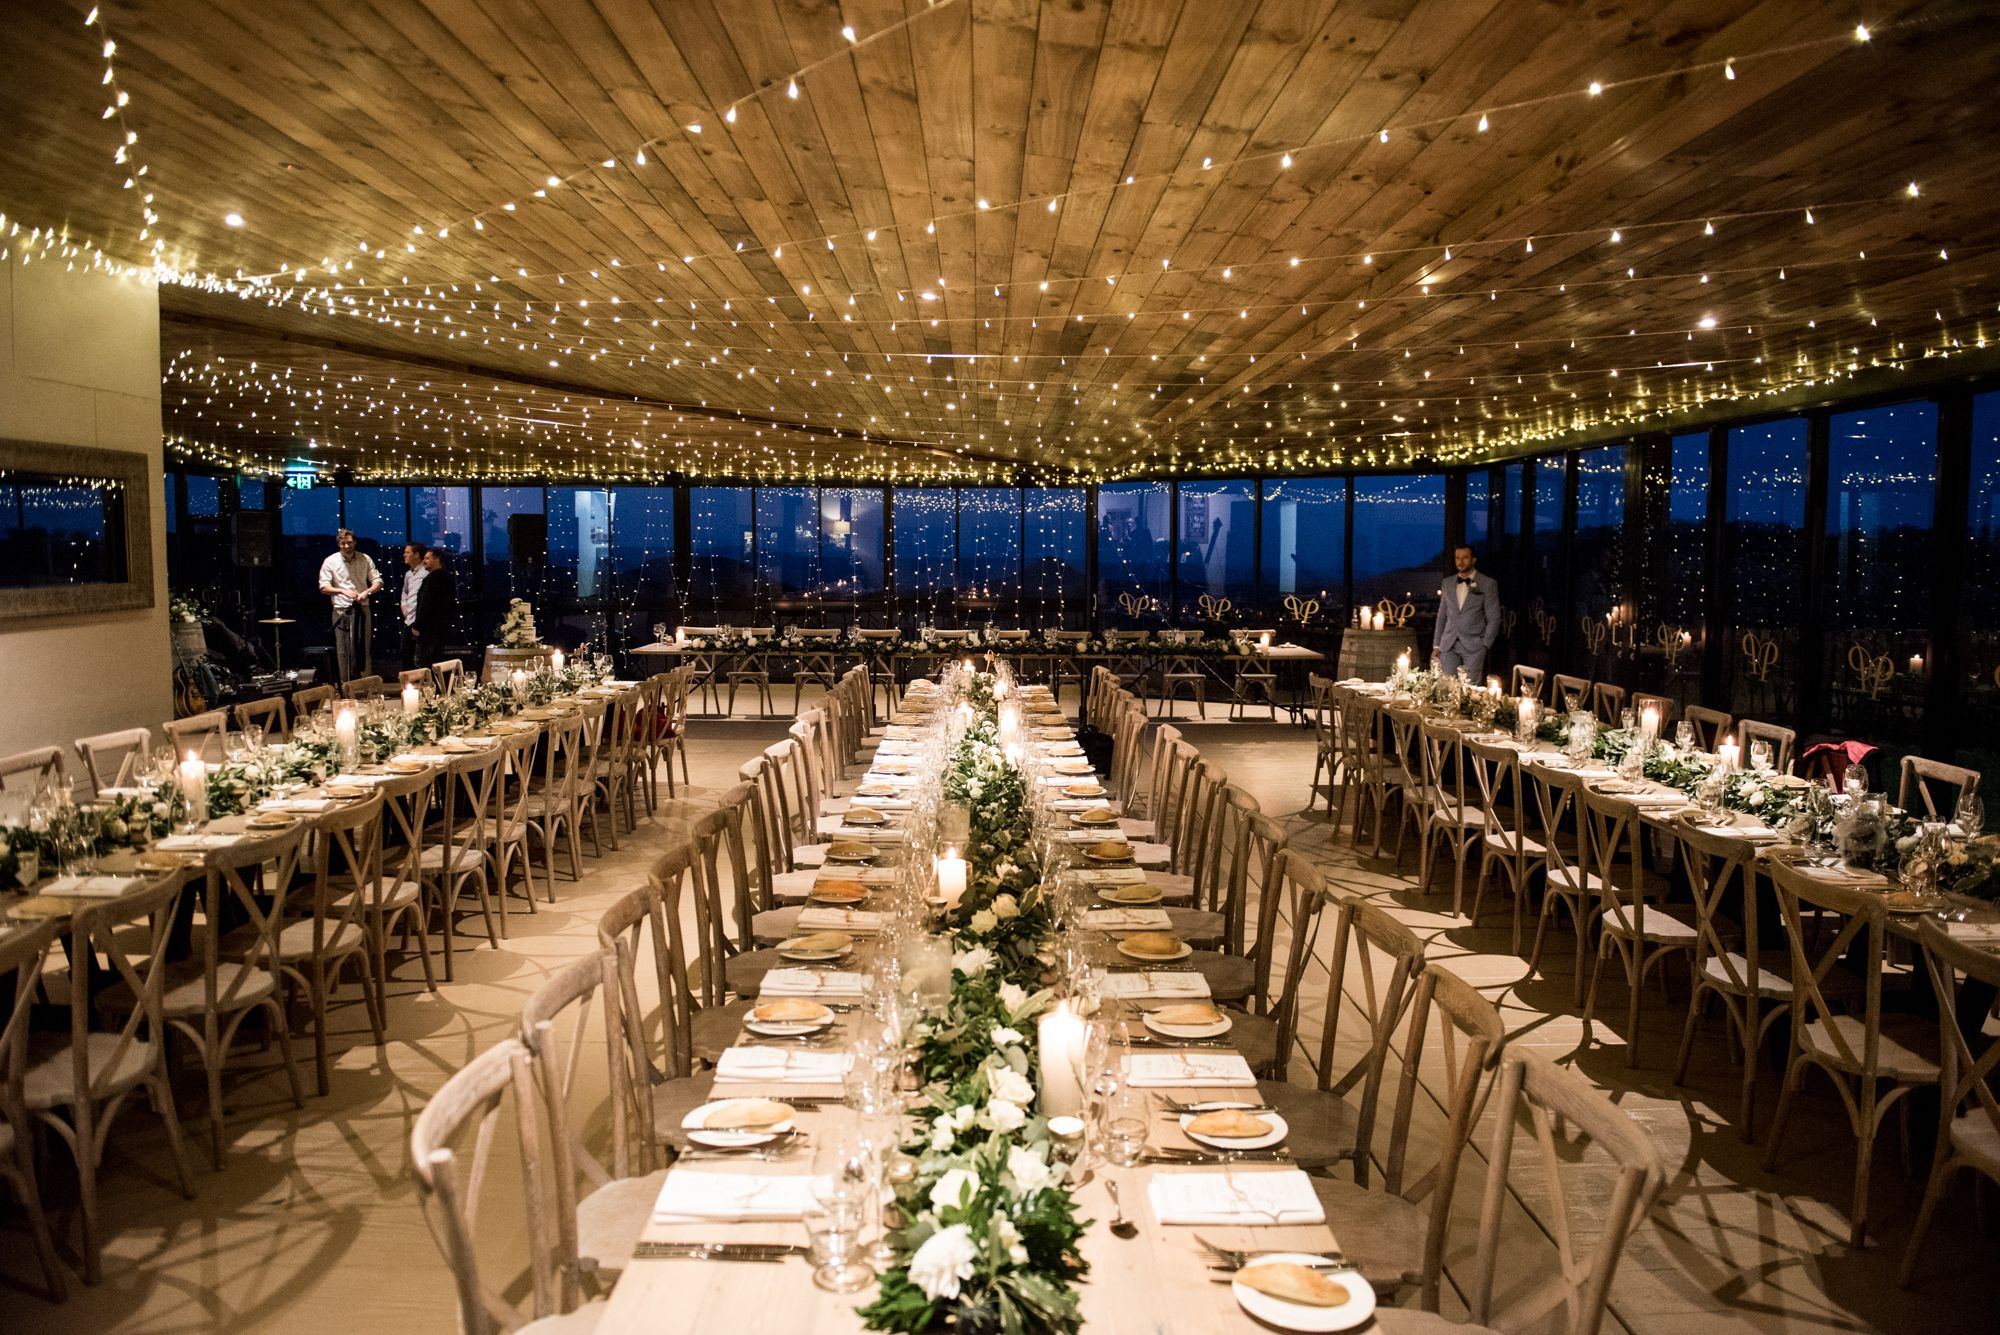 Styling Floral Design Hire All By Toowoomba White Wedding Event Hire Venue Preston Peak Winery White Wedding Wedding Wedding Expert